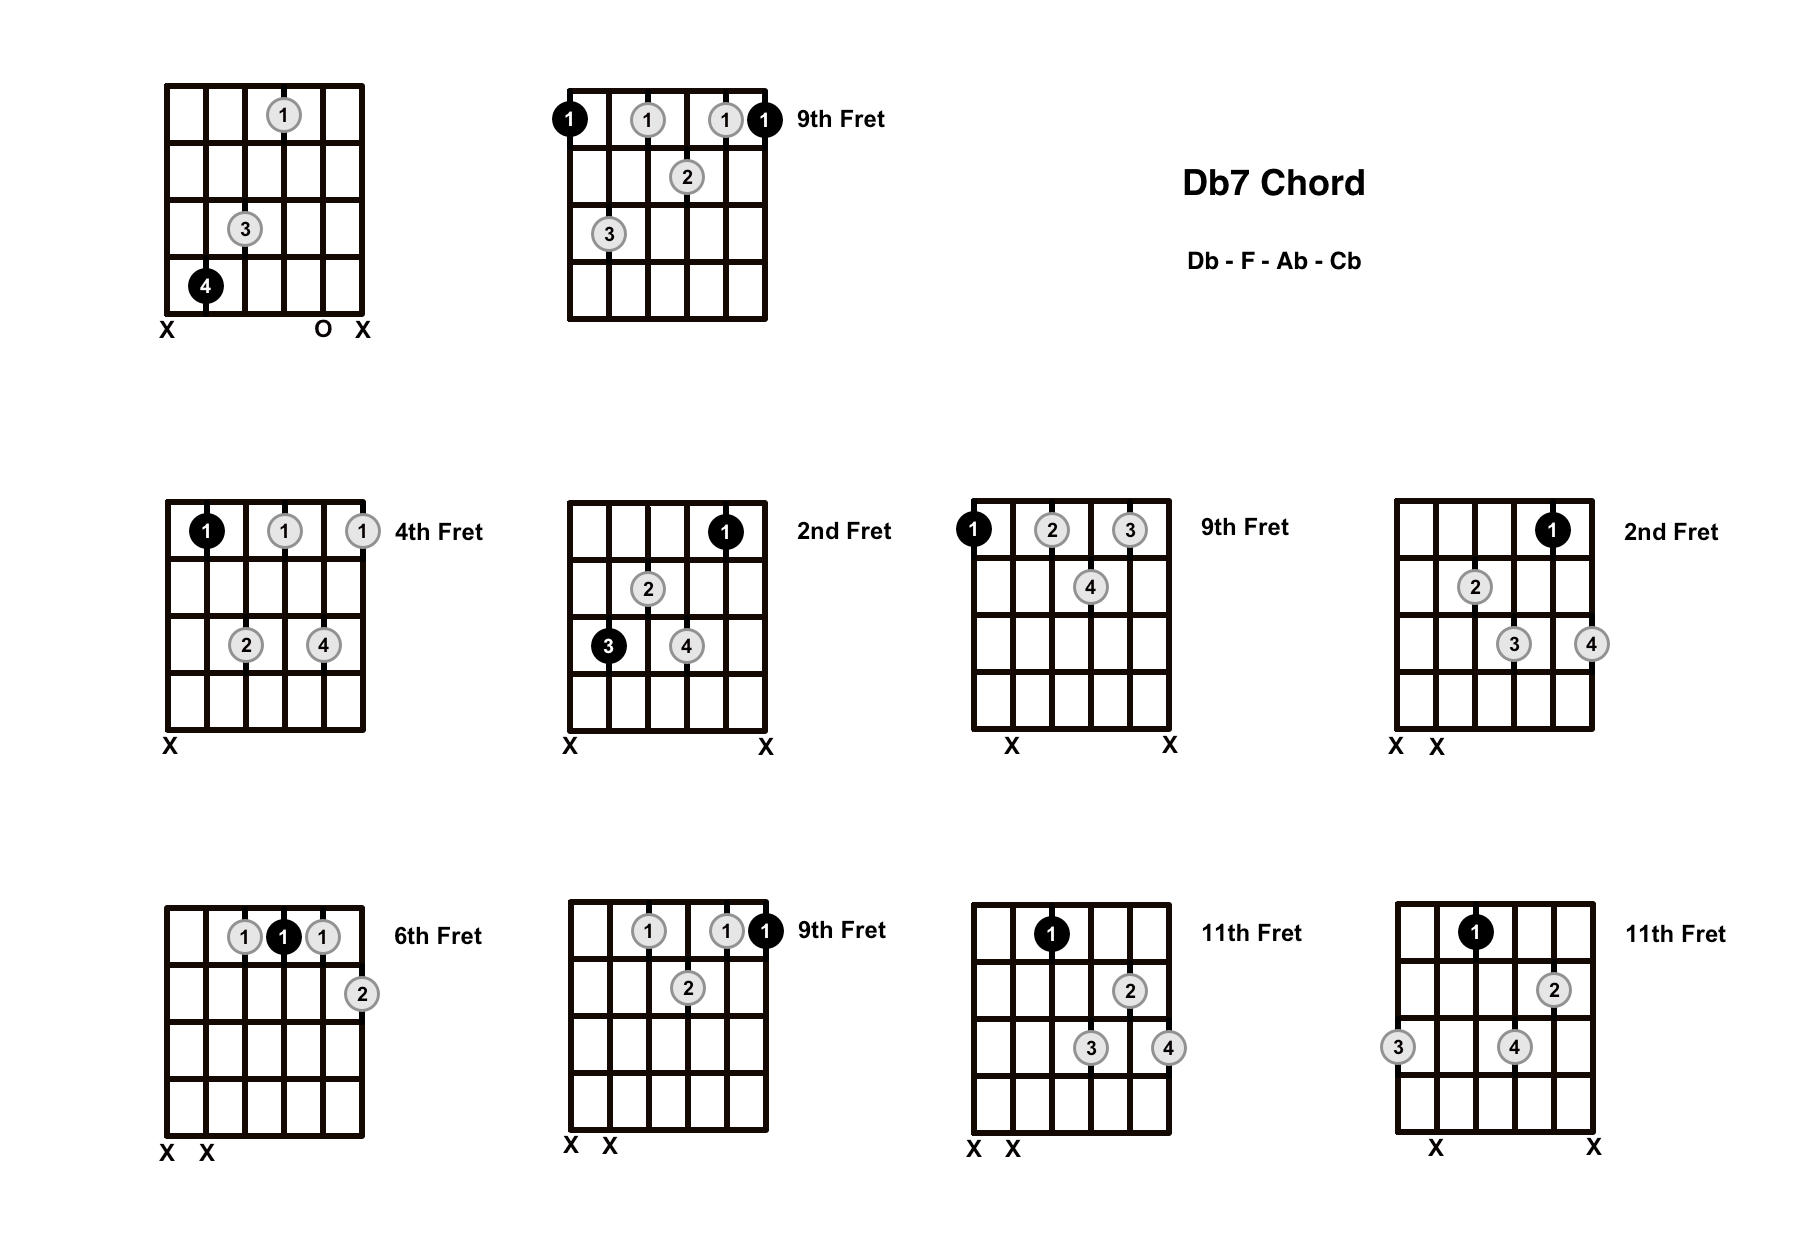 Db7 Chord On The Guitar (D Flat Dominant 7) – Diagrams, Finger Positions and Theory